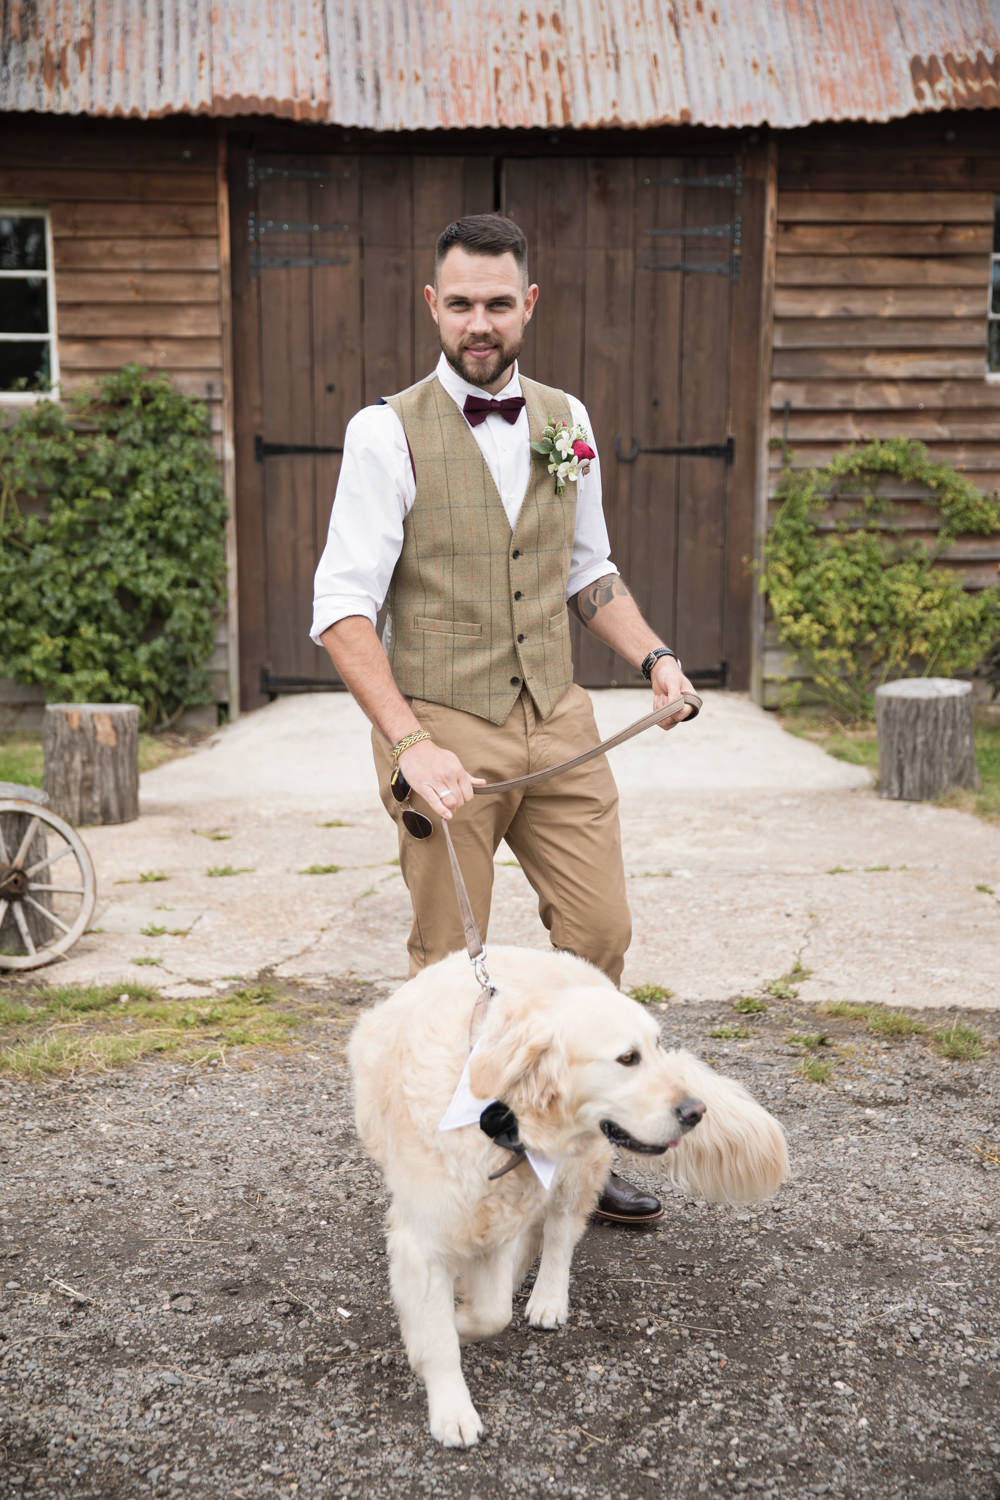 Groom Tweed Waistcoat Red Bow Tie Brown Check Country Suit Dog Pet House Meadow Wedding Kerry Ann Duffy Photography